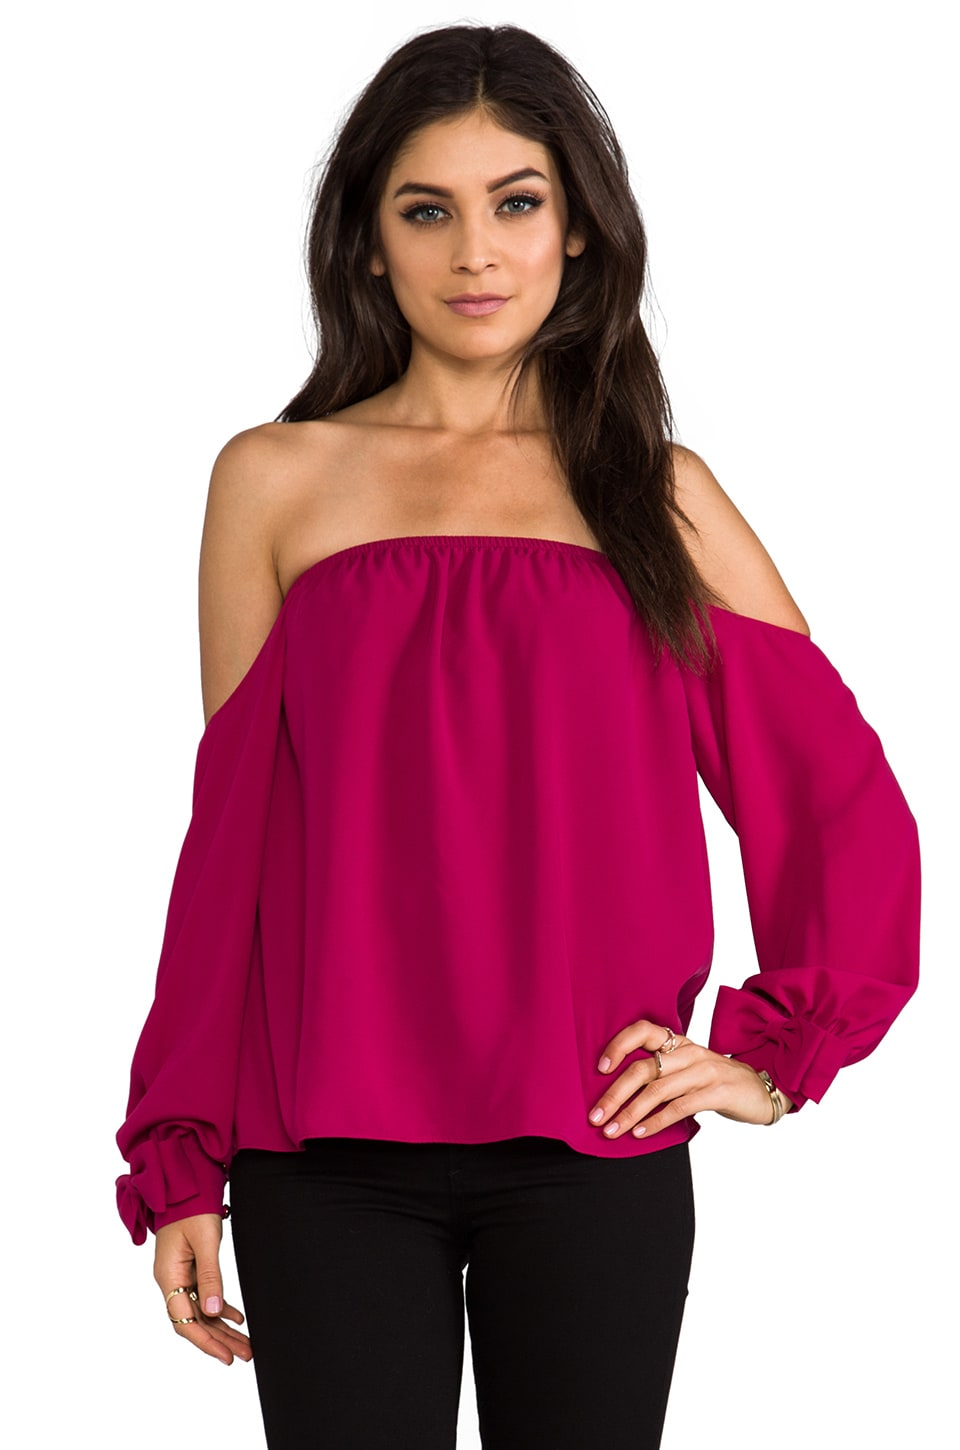 VAVA by Joy Han Amelia Off the Shoulder Top in Berry